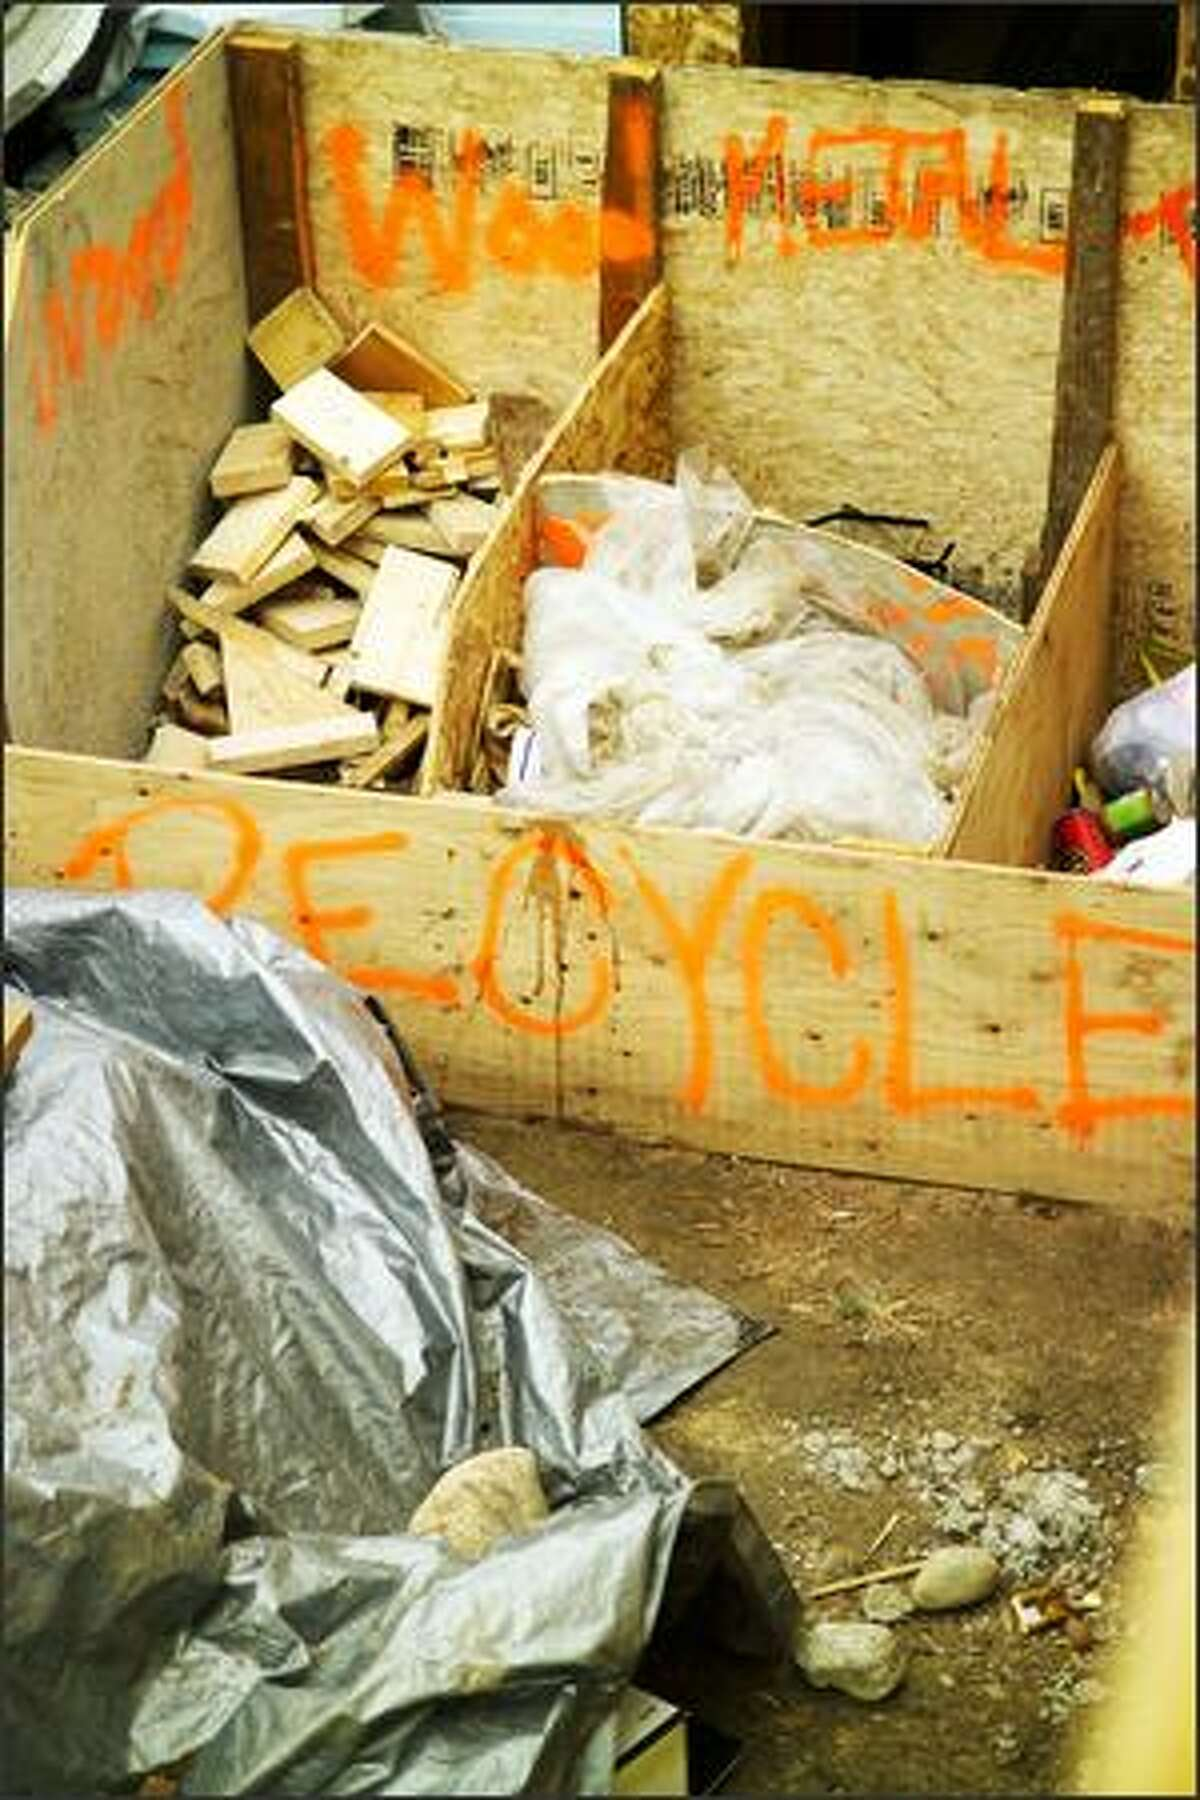 All unused materials and scrap go into the recycling bin, not the trash.